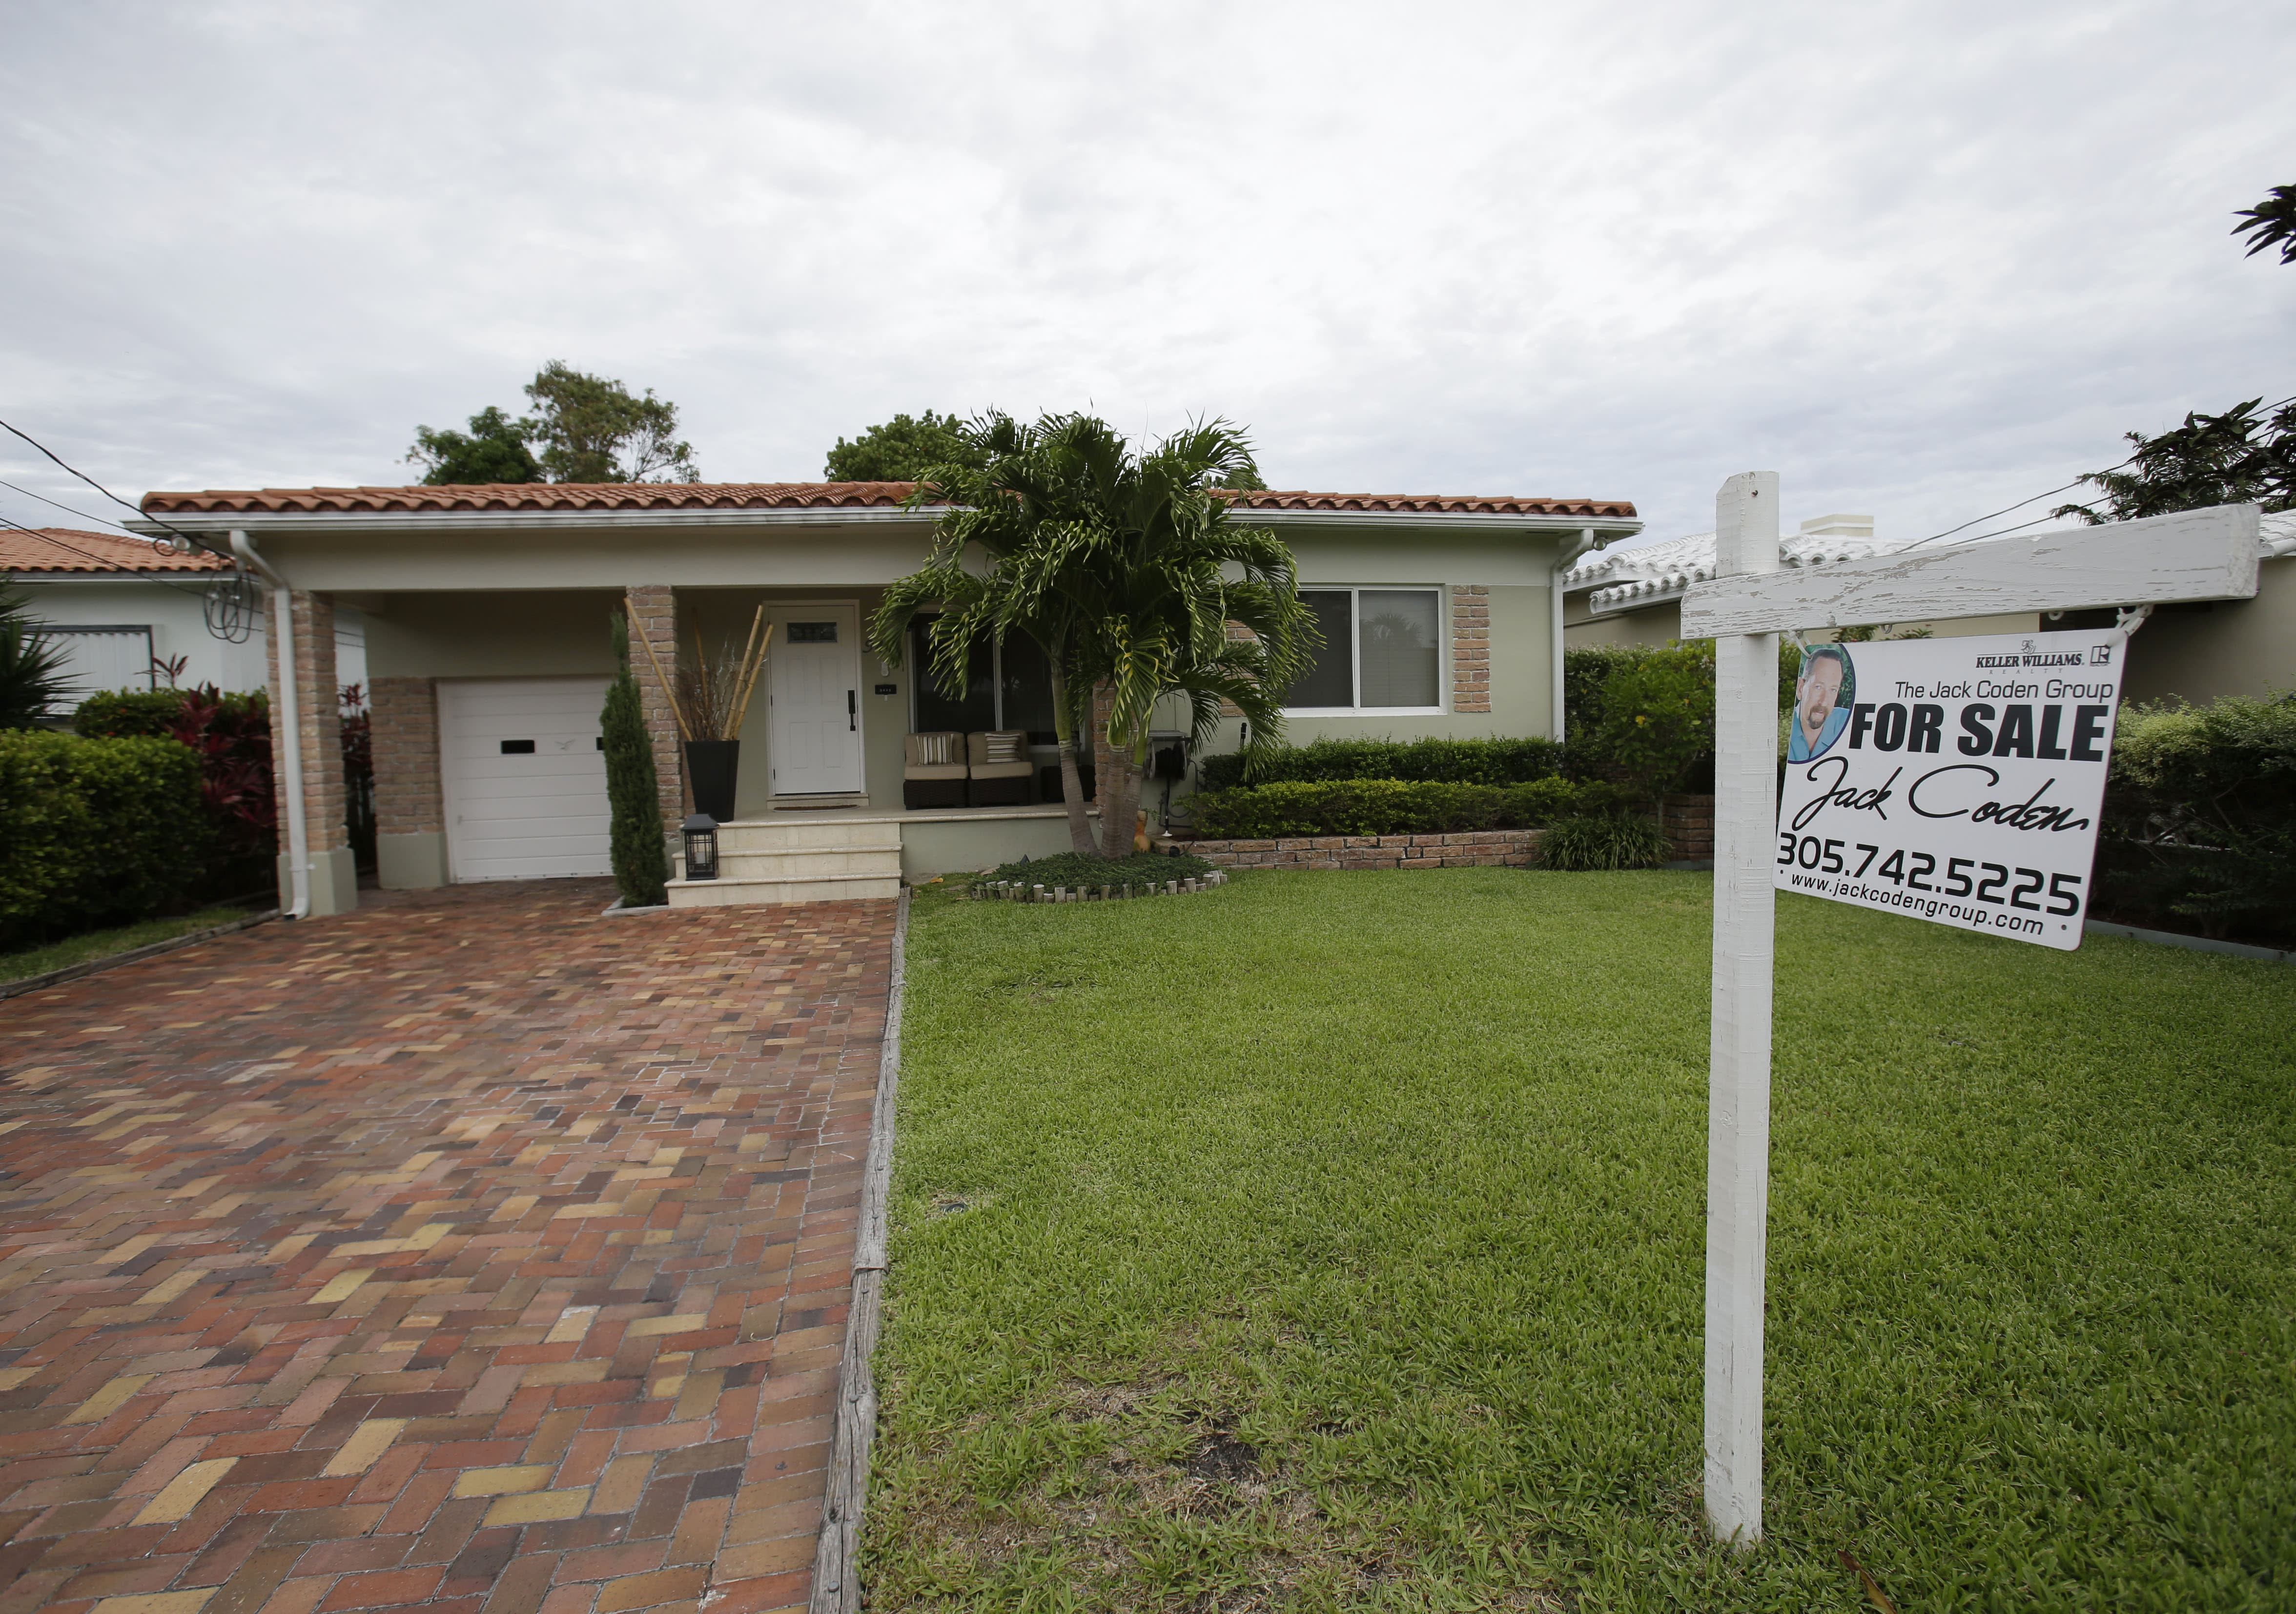 US home prices rise in May by most in 7 years